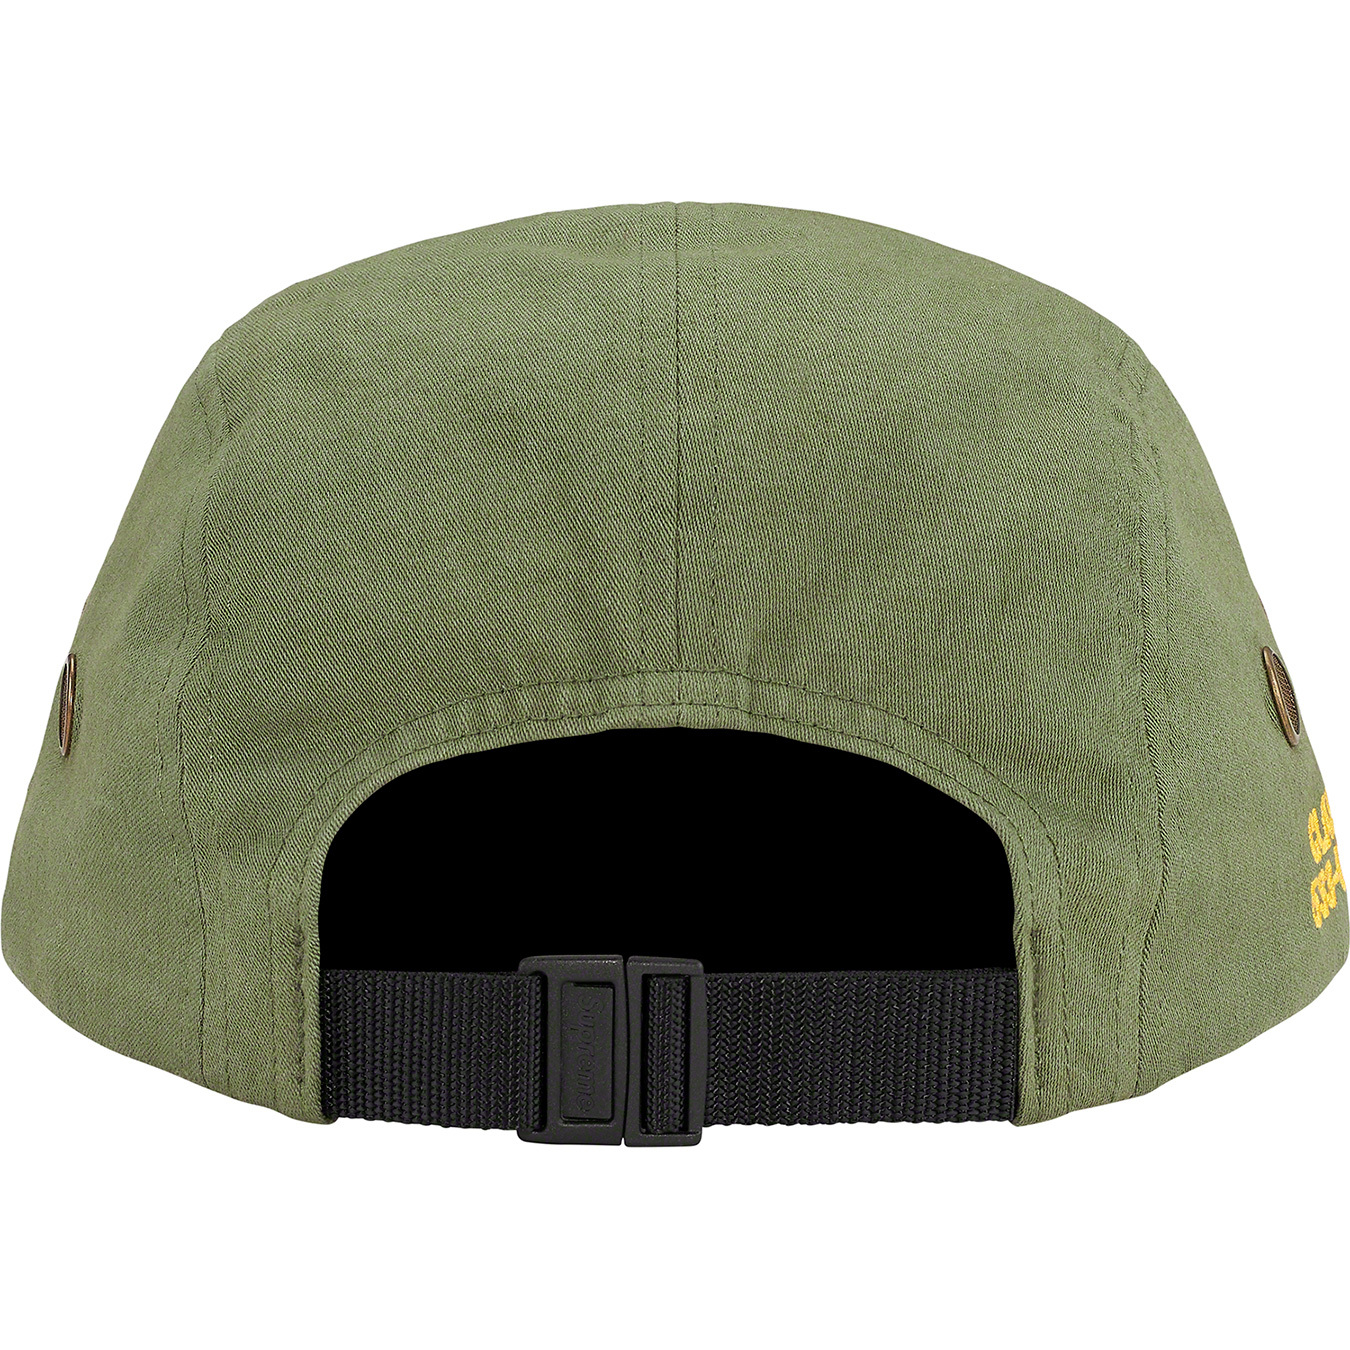 supreme-21ss-spring-summer-military-camp-cap